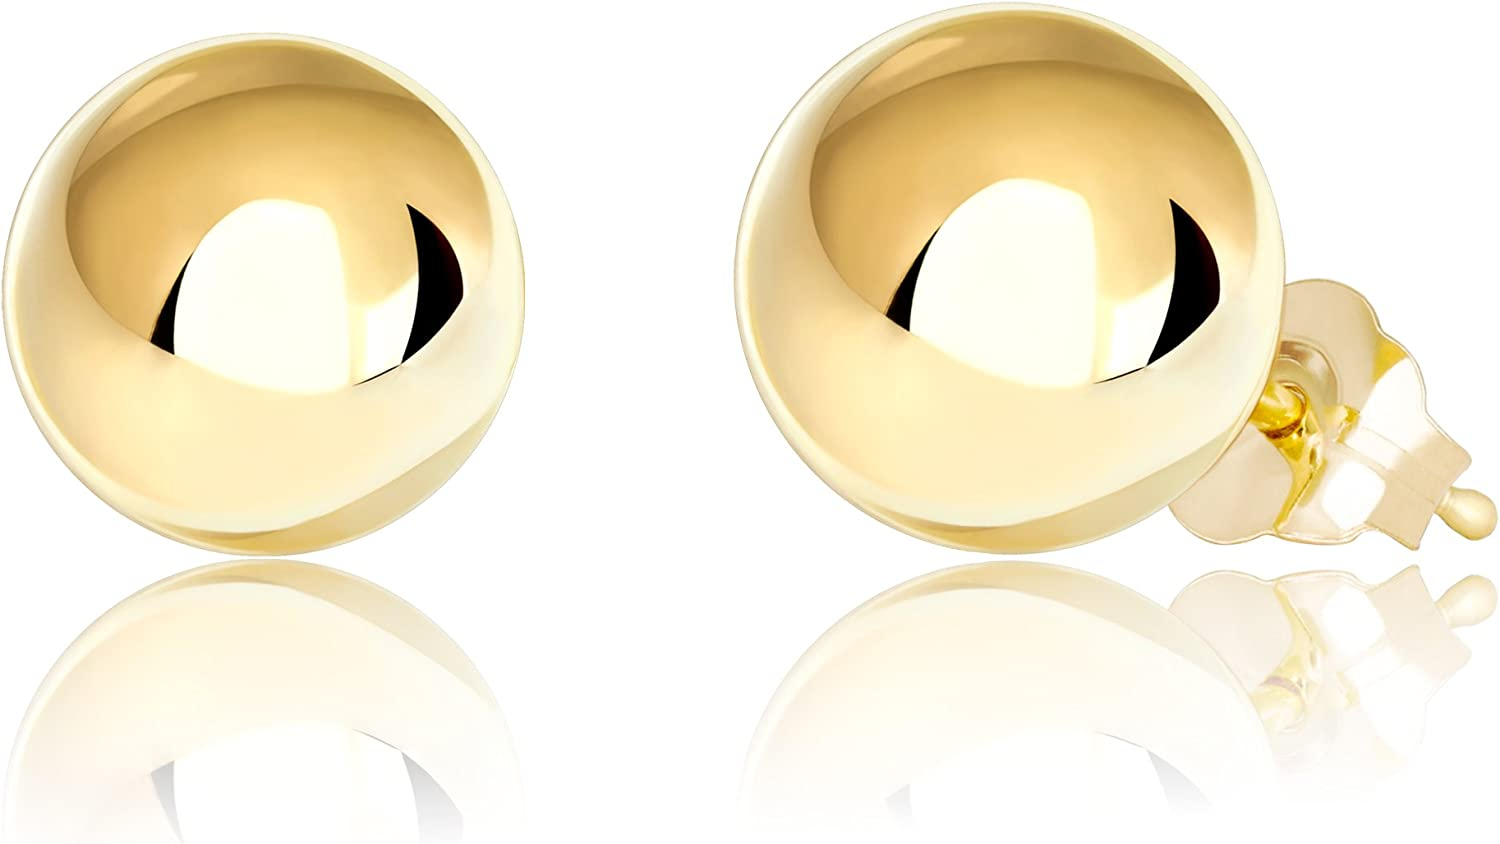 Premium 14K Yellow Gold Filled Ball Stud Earrings with 5mm Backings, 2mm - 10mm